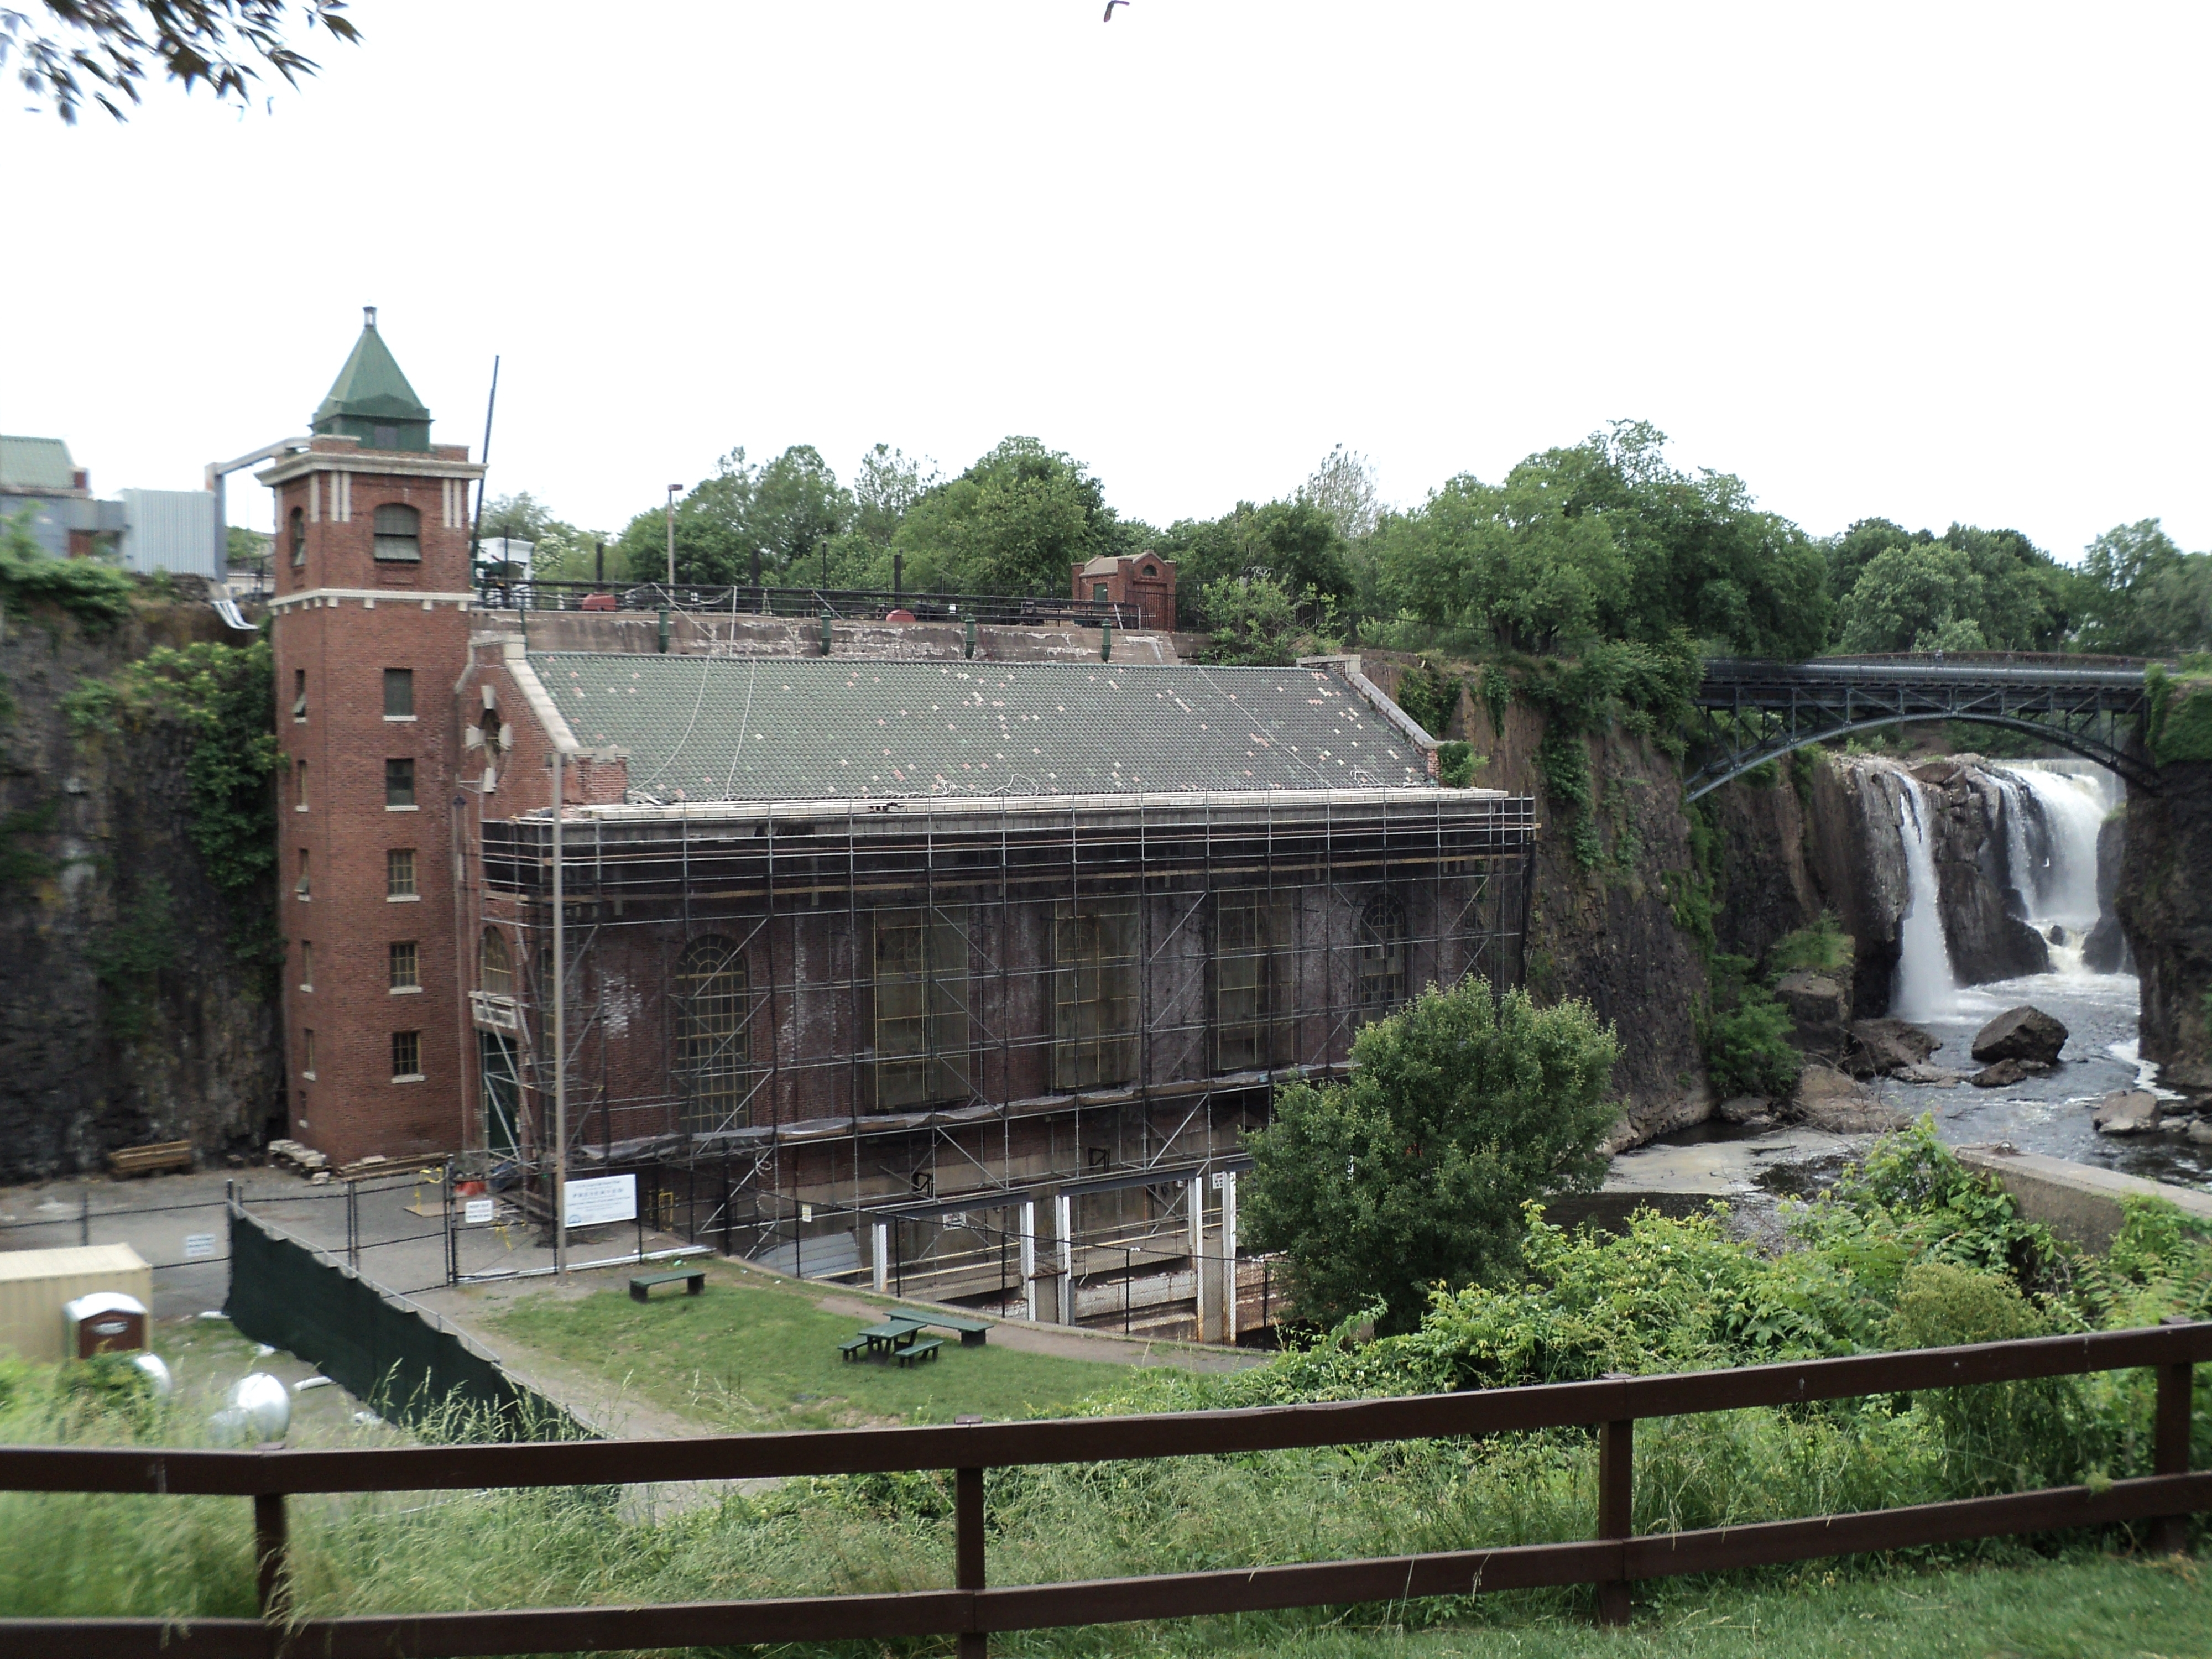 S.U.M. Hydroelectric Station